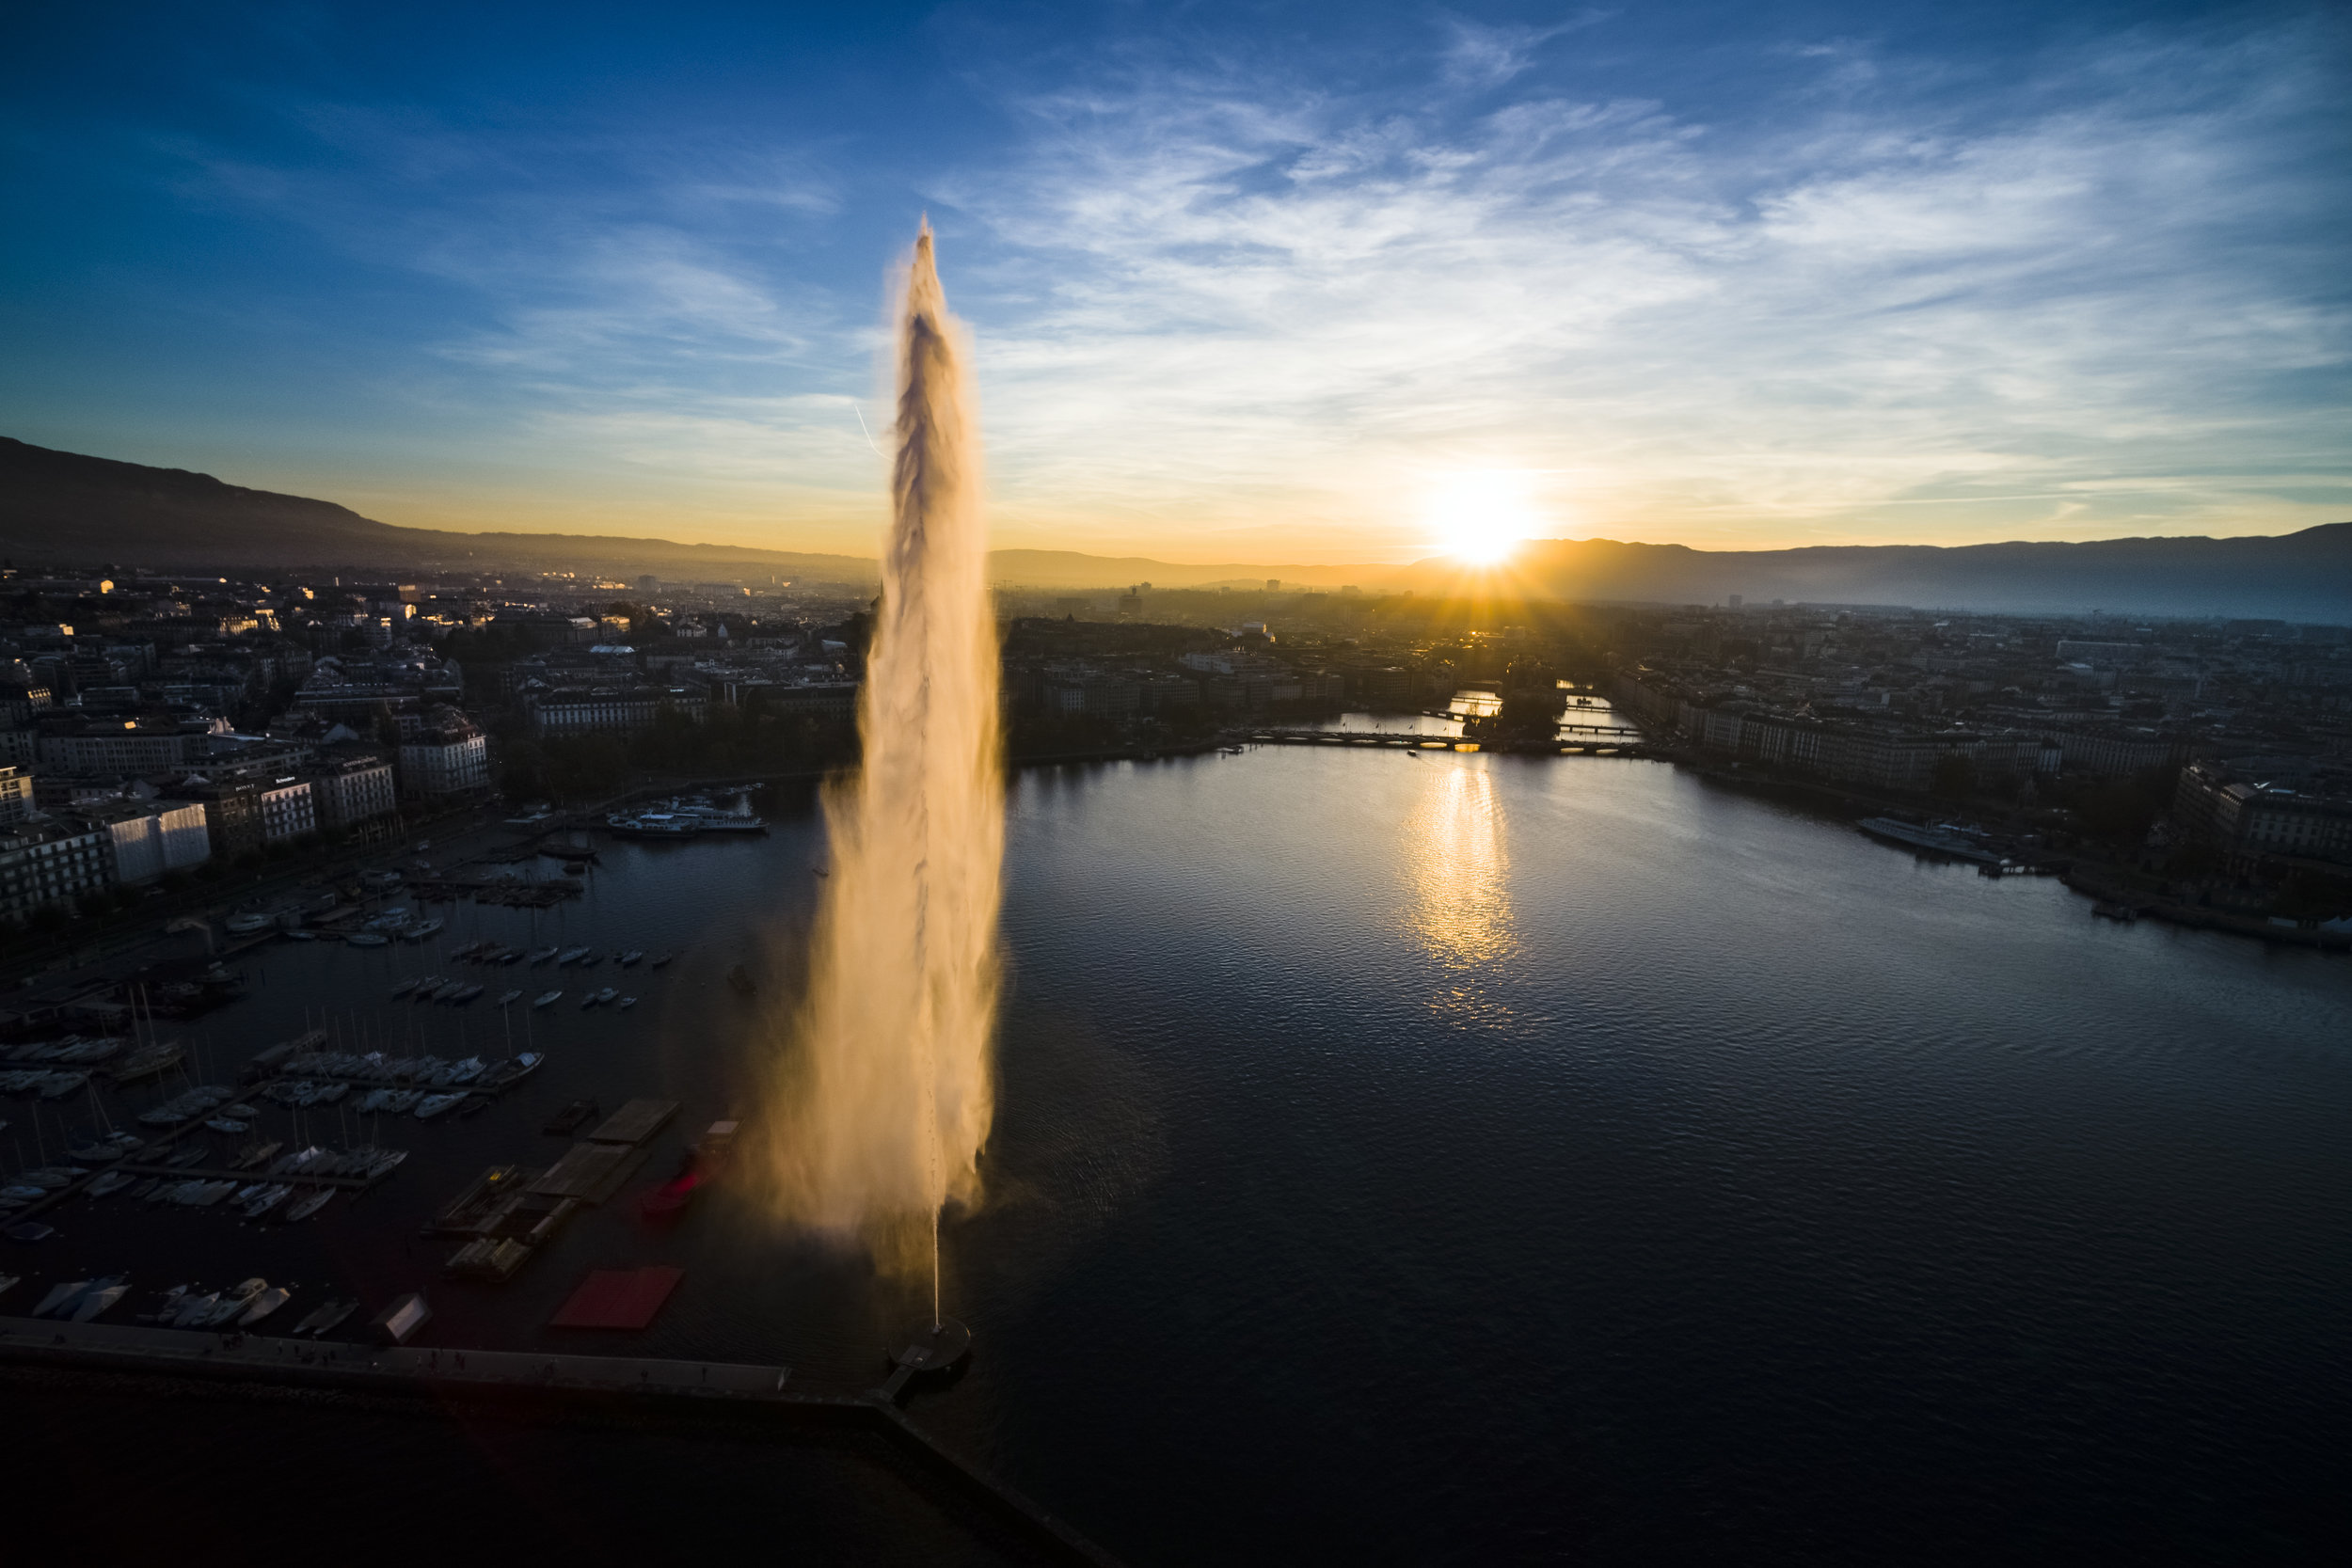 """The Geneva Water Fountain landmark, so called """"Jet d'Eau"""" in French, rises above the harbor and cityscape in Geneva, Switzerland, Thursday, October 26, 2017. The fountain has been operated in the present location since 1891 and now reaches a height of approximately 140m with over 7 tones of water in the air above Lake Geneva at once. (KEYSTONE/Valentin Flauraud)"""